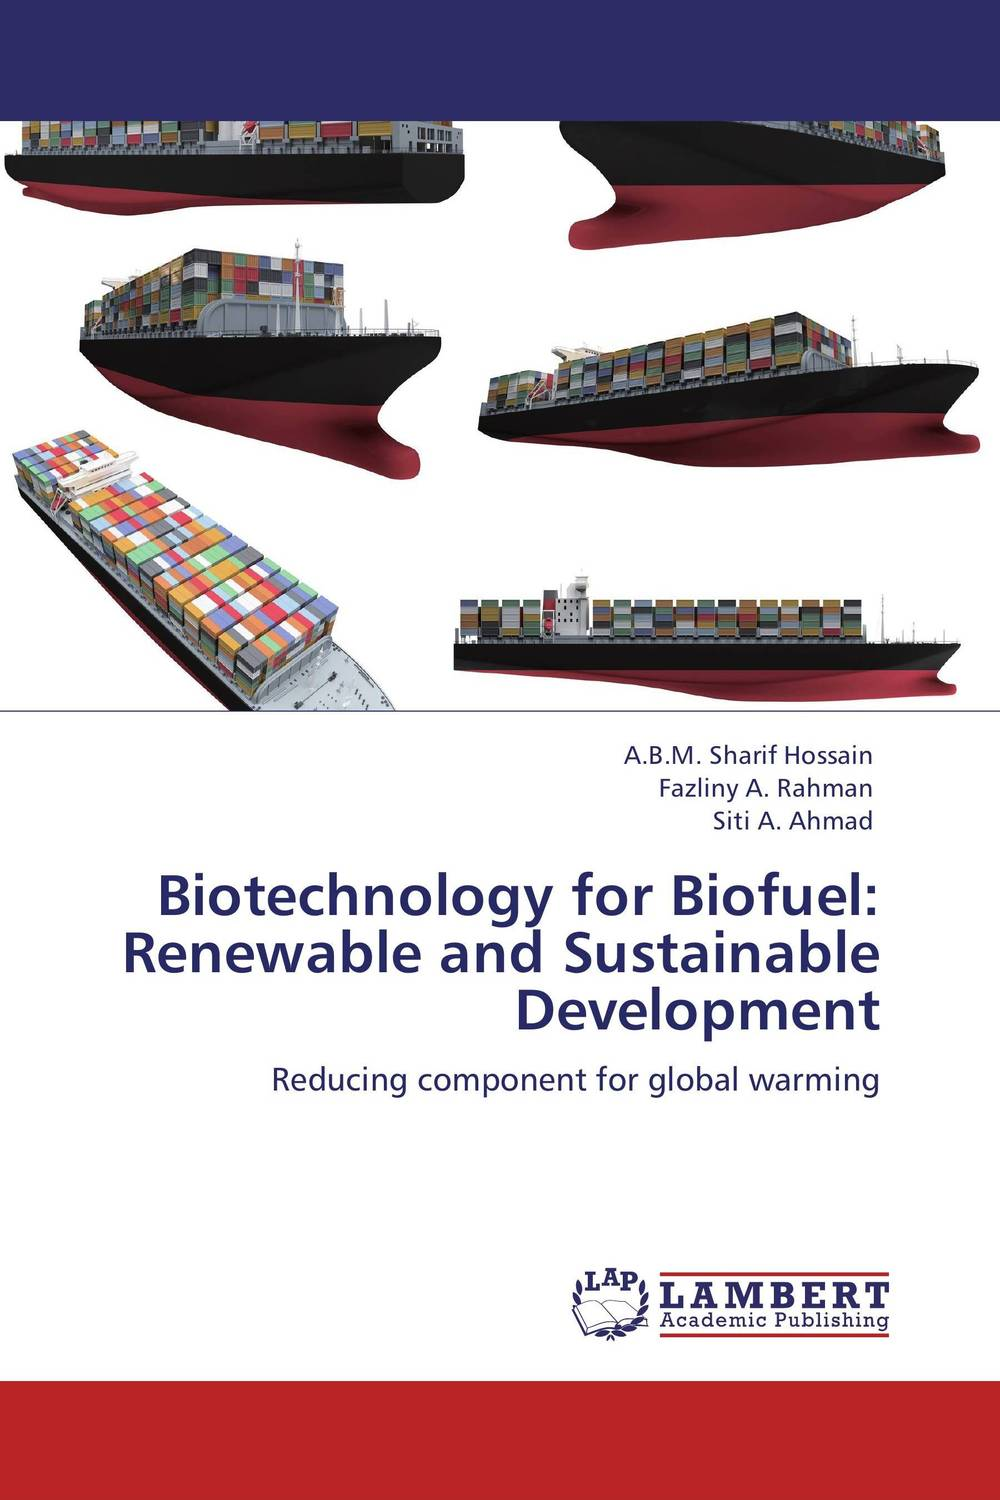 Biotechnology for Biofuel: Renewable and Sustainable Development